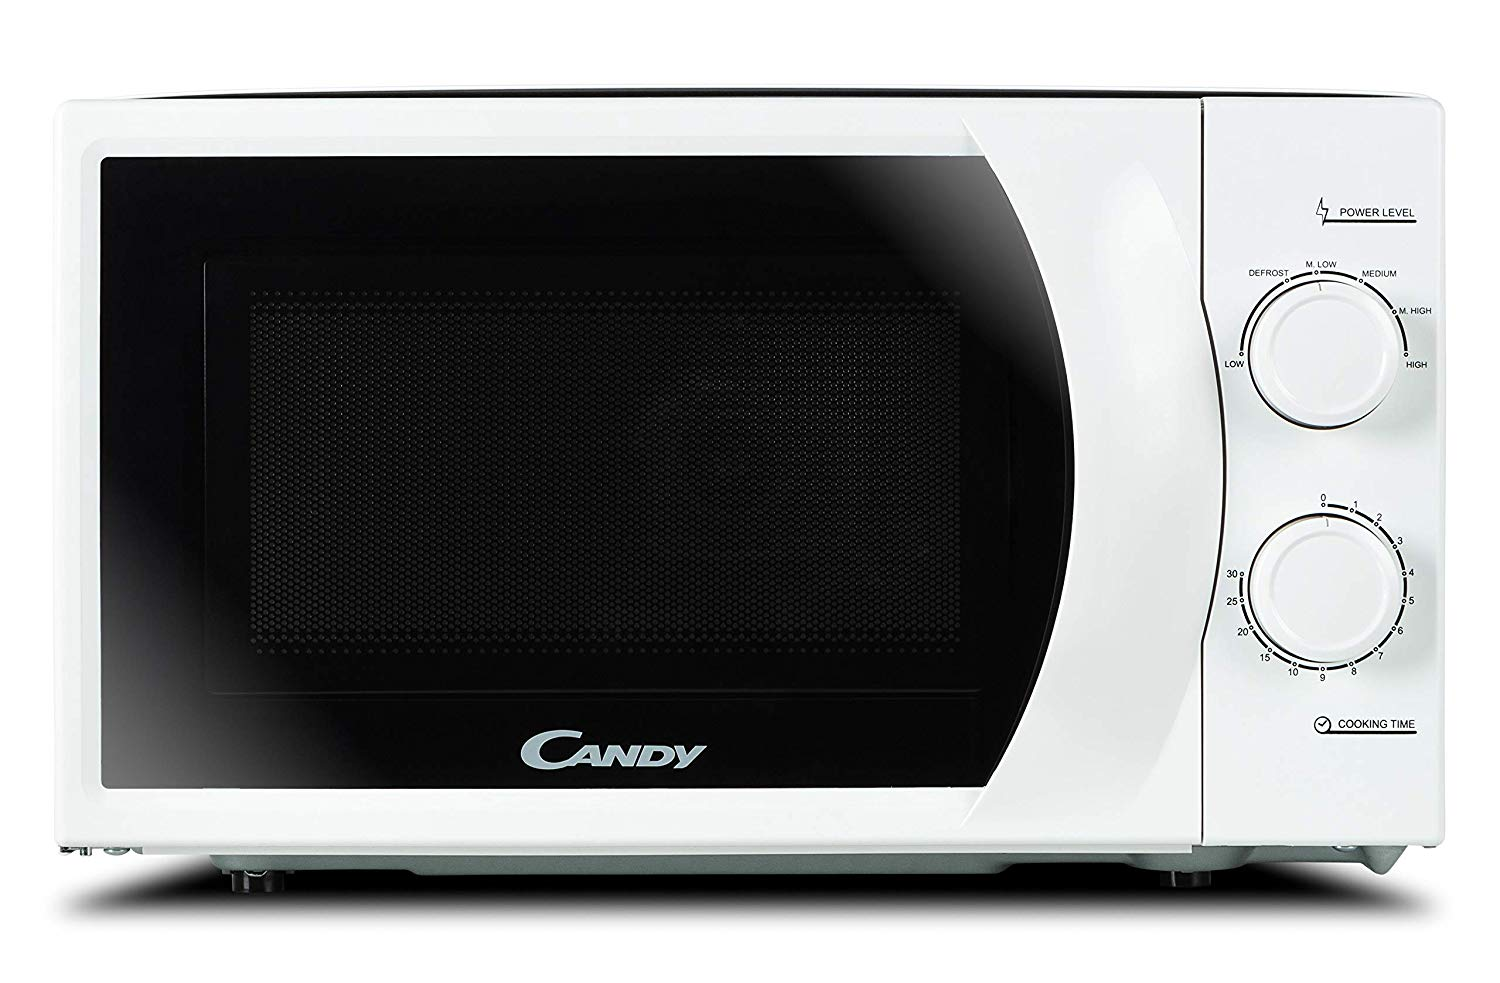 Candy 20L 700W Solo Microwave White